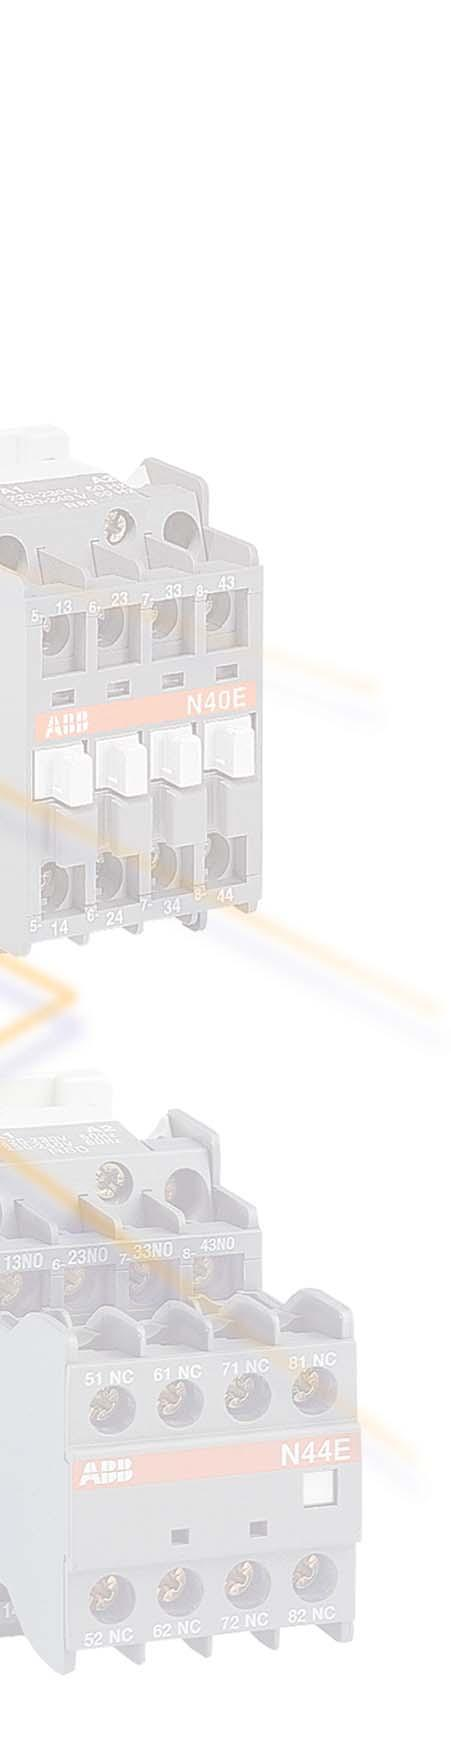 Main Catalogue Contactors Motor Protection Accessories Pdf Controlling Astardelta Contactor Relays Contents Panorama N Ac Operated